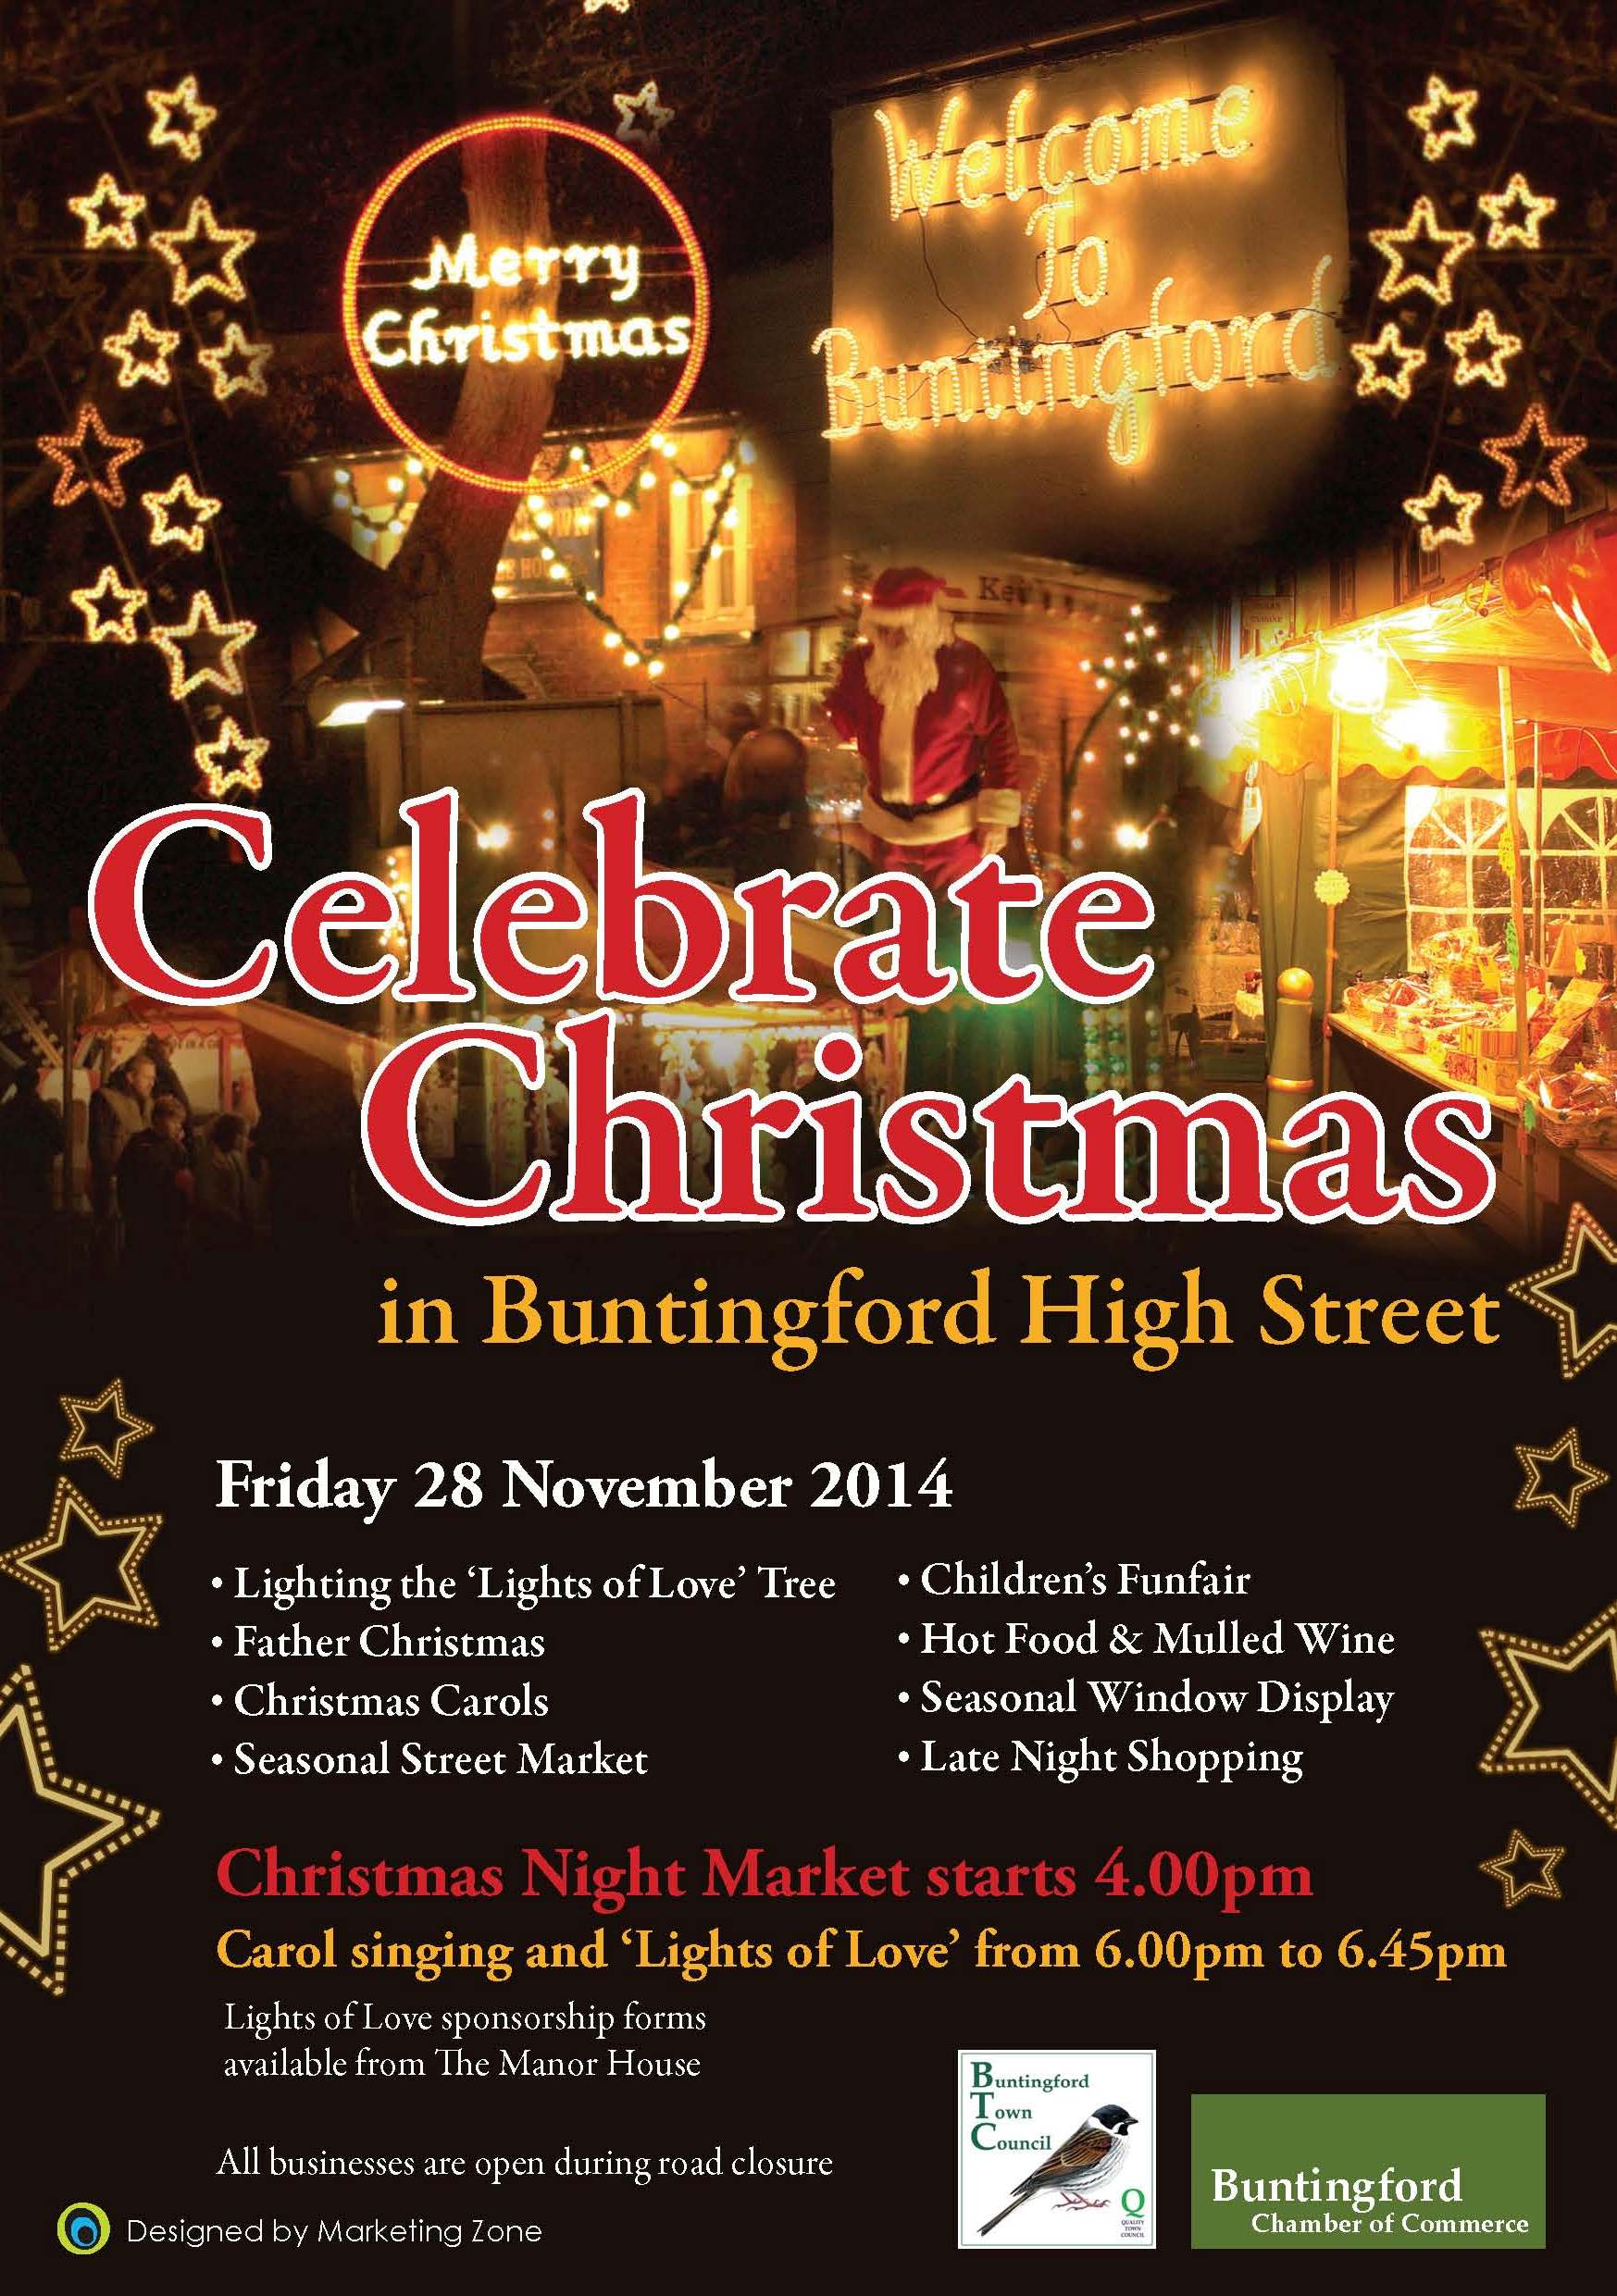 How Many Days Till Christmas From Today.So How Many Days Till Christmas Buntingford Chamber Of